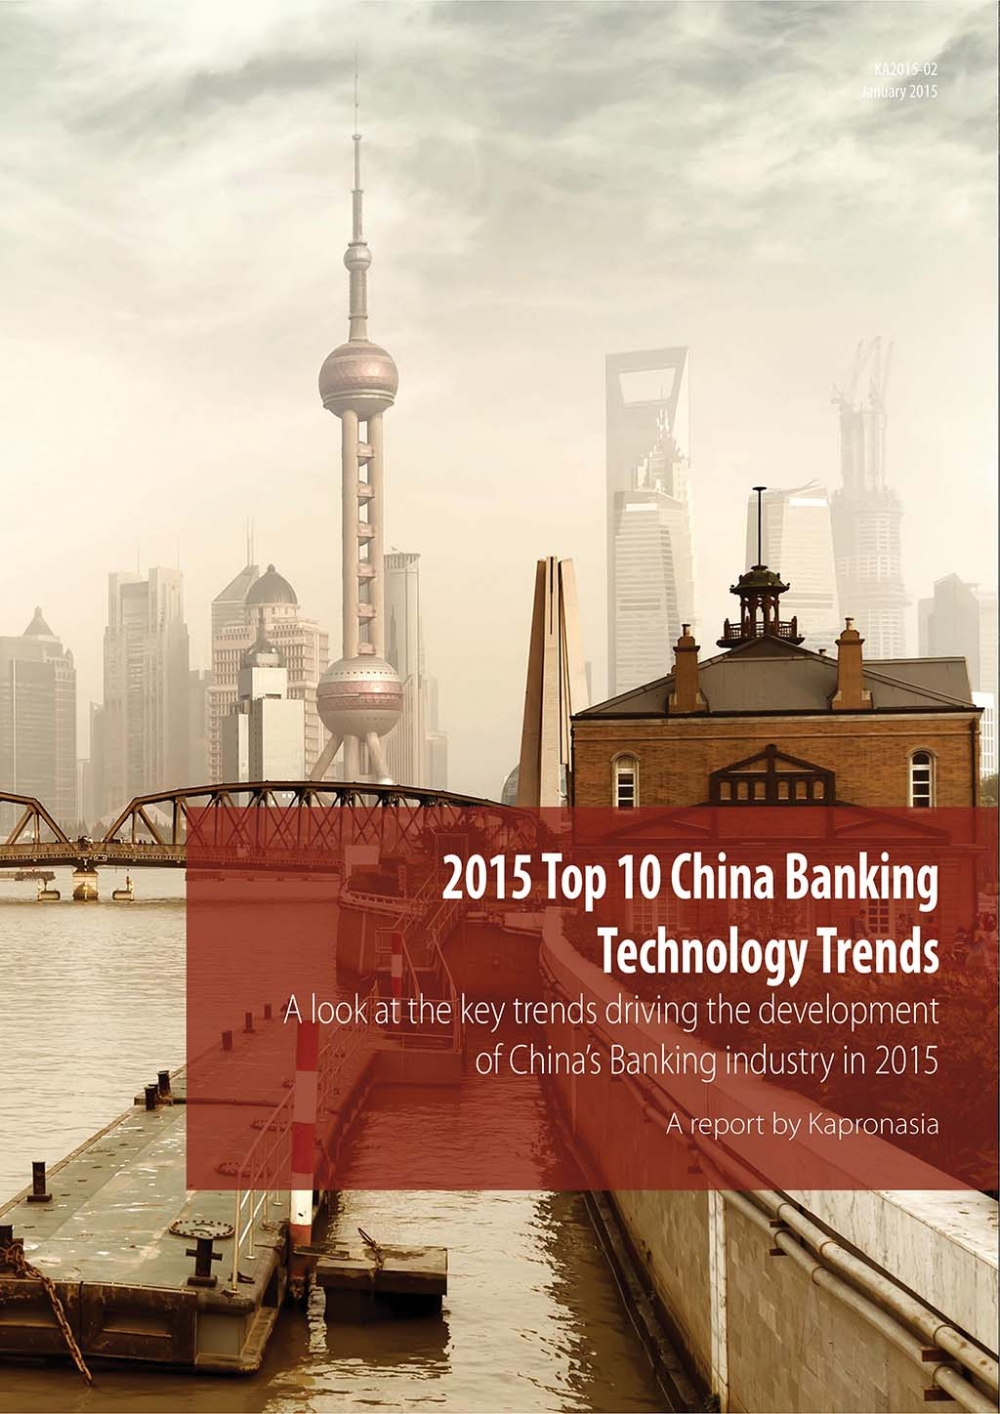 2015 Top 10 China Banking Technology Trends